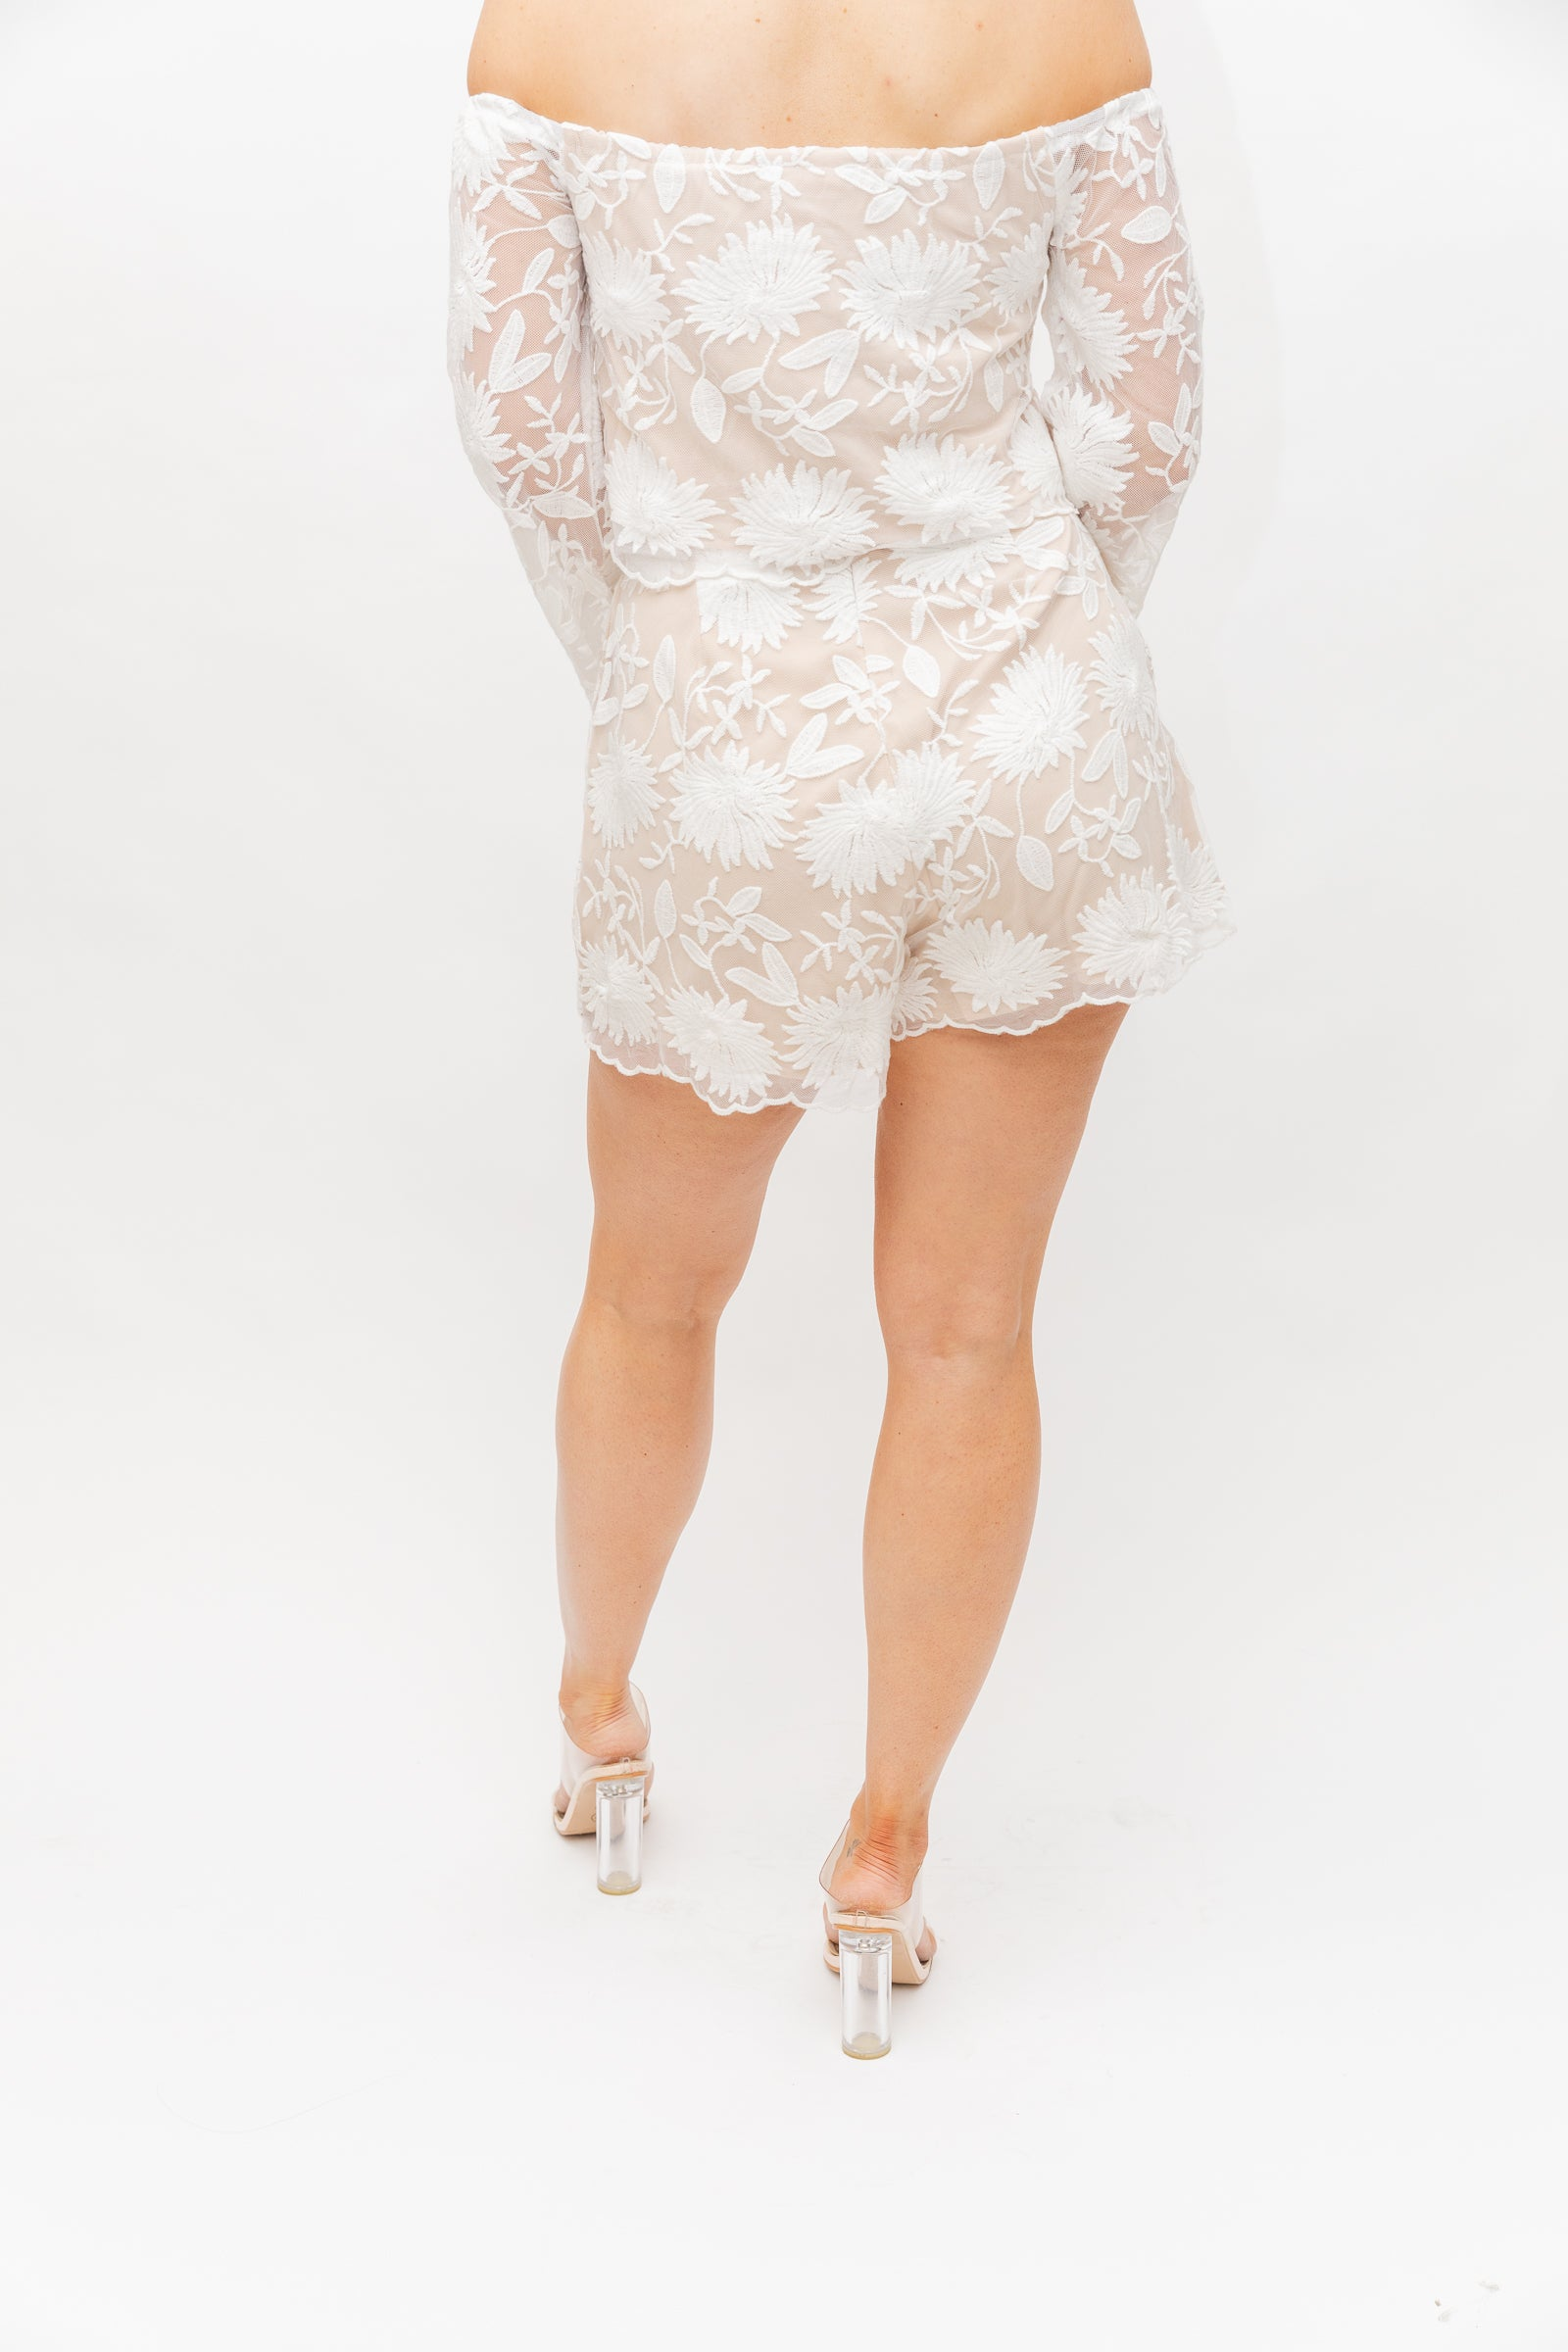 Gorgeous white lace overlays the tan fabric of these shorts. It has a fitted waistband and goes down into relaxed shorts with a scallop hem.